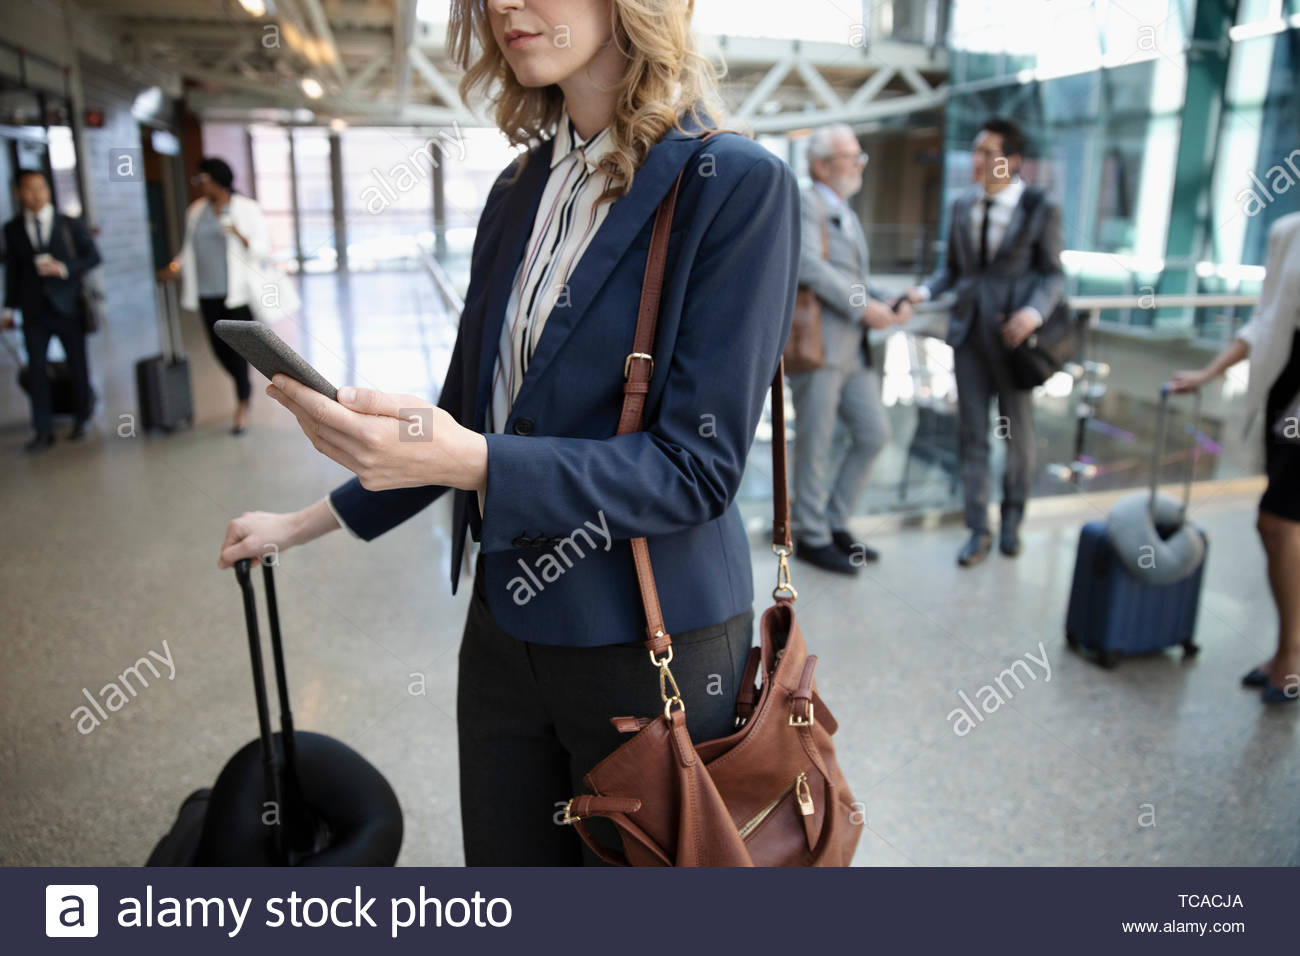 Businesswoman with suitcase using smart phone in airport Photo Stock